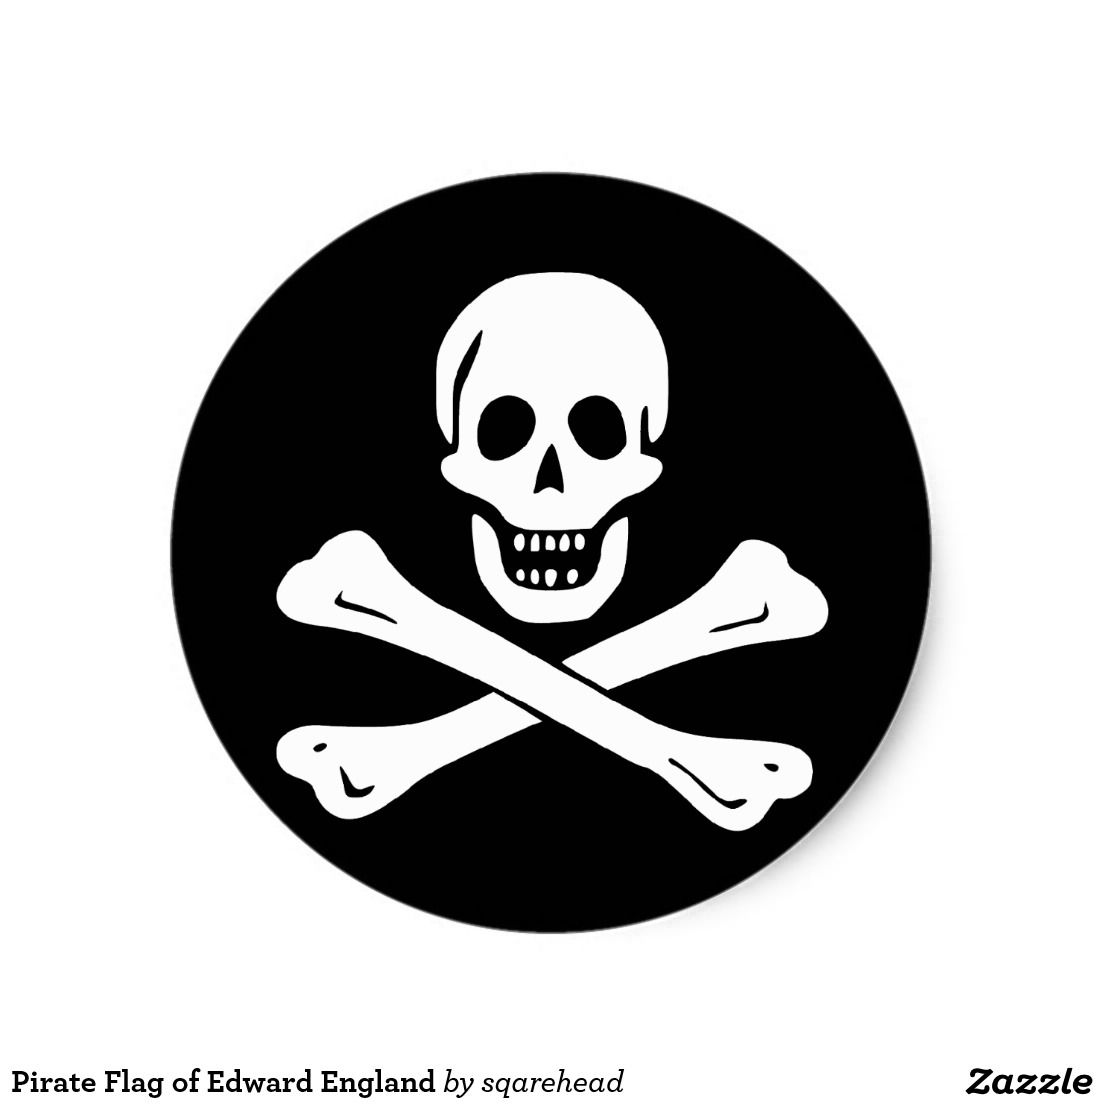 pirate flag of edward england classic round sticker round stickers rh pinterest com MLP Ponyville Flag Jack Sparrow Pirate Flag